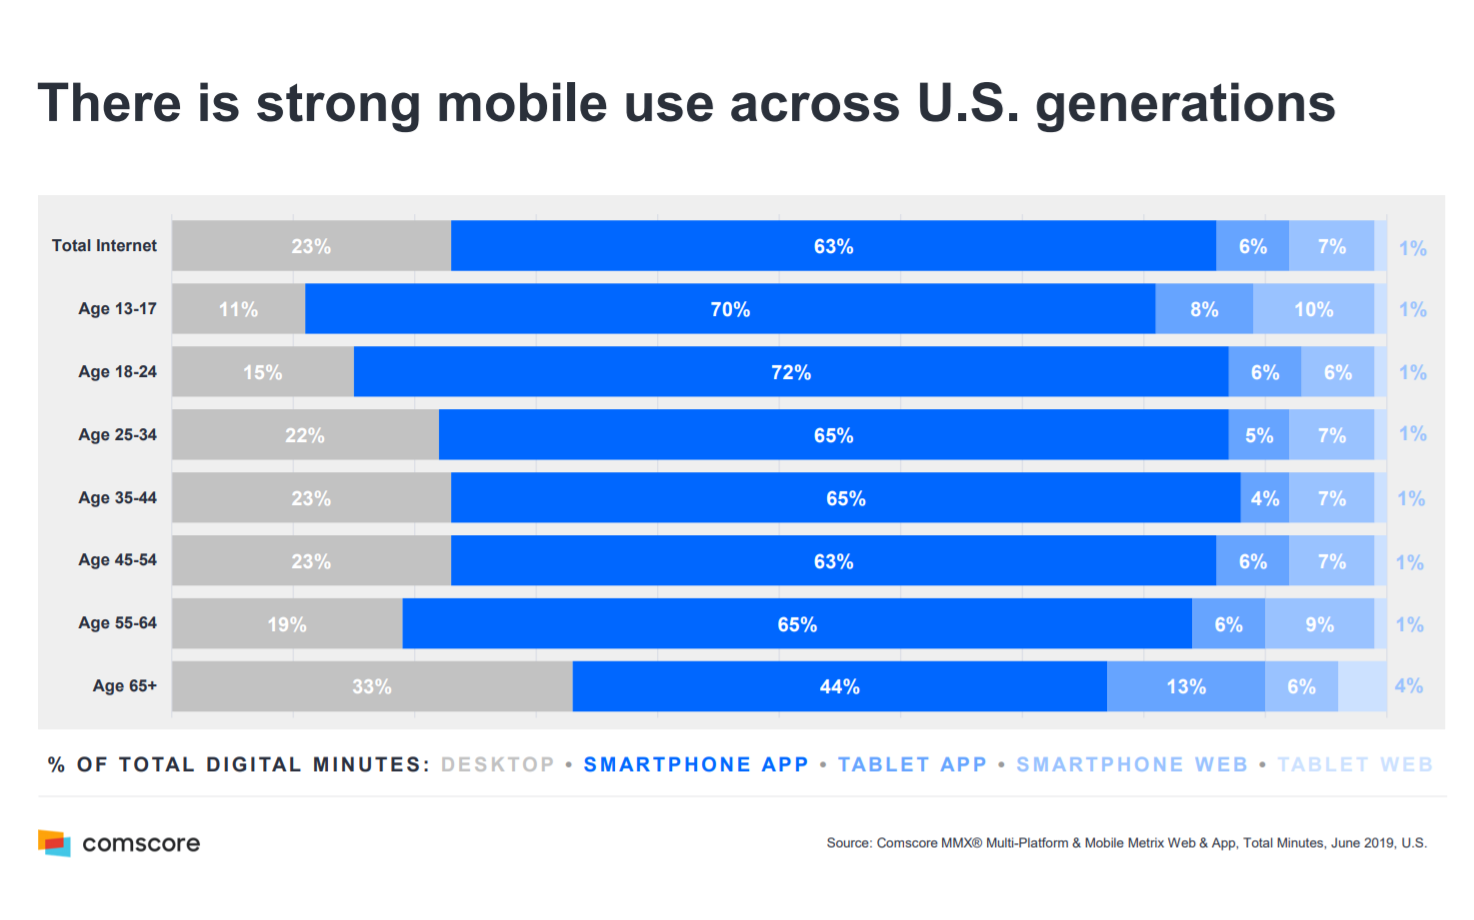 There is strong mobile use across U.S. generations